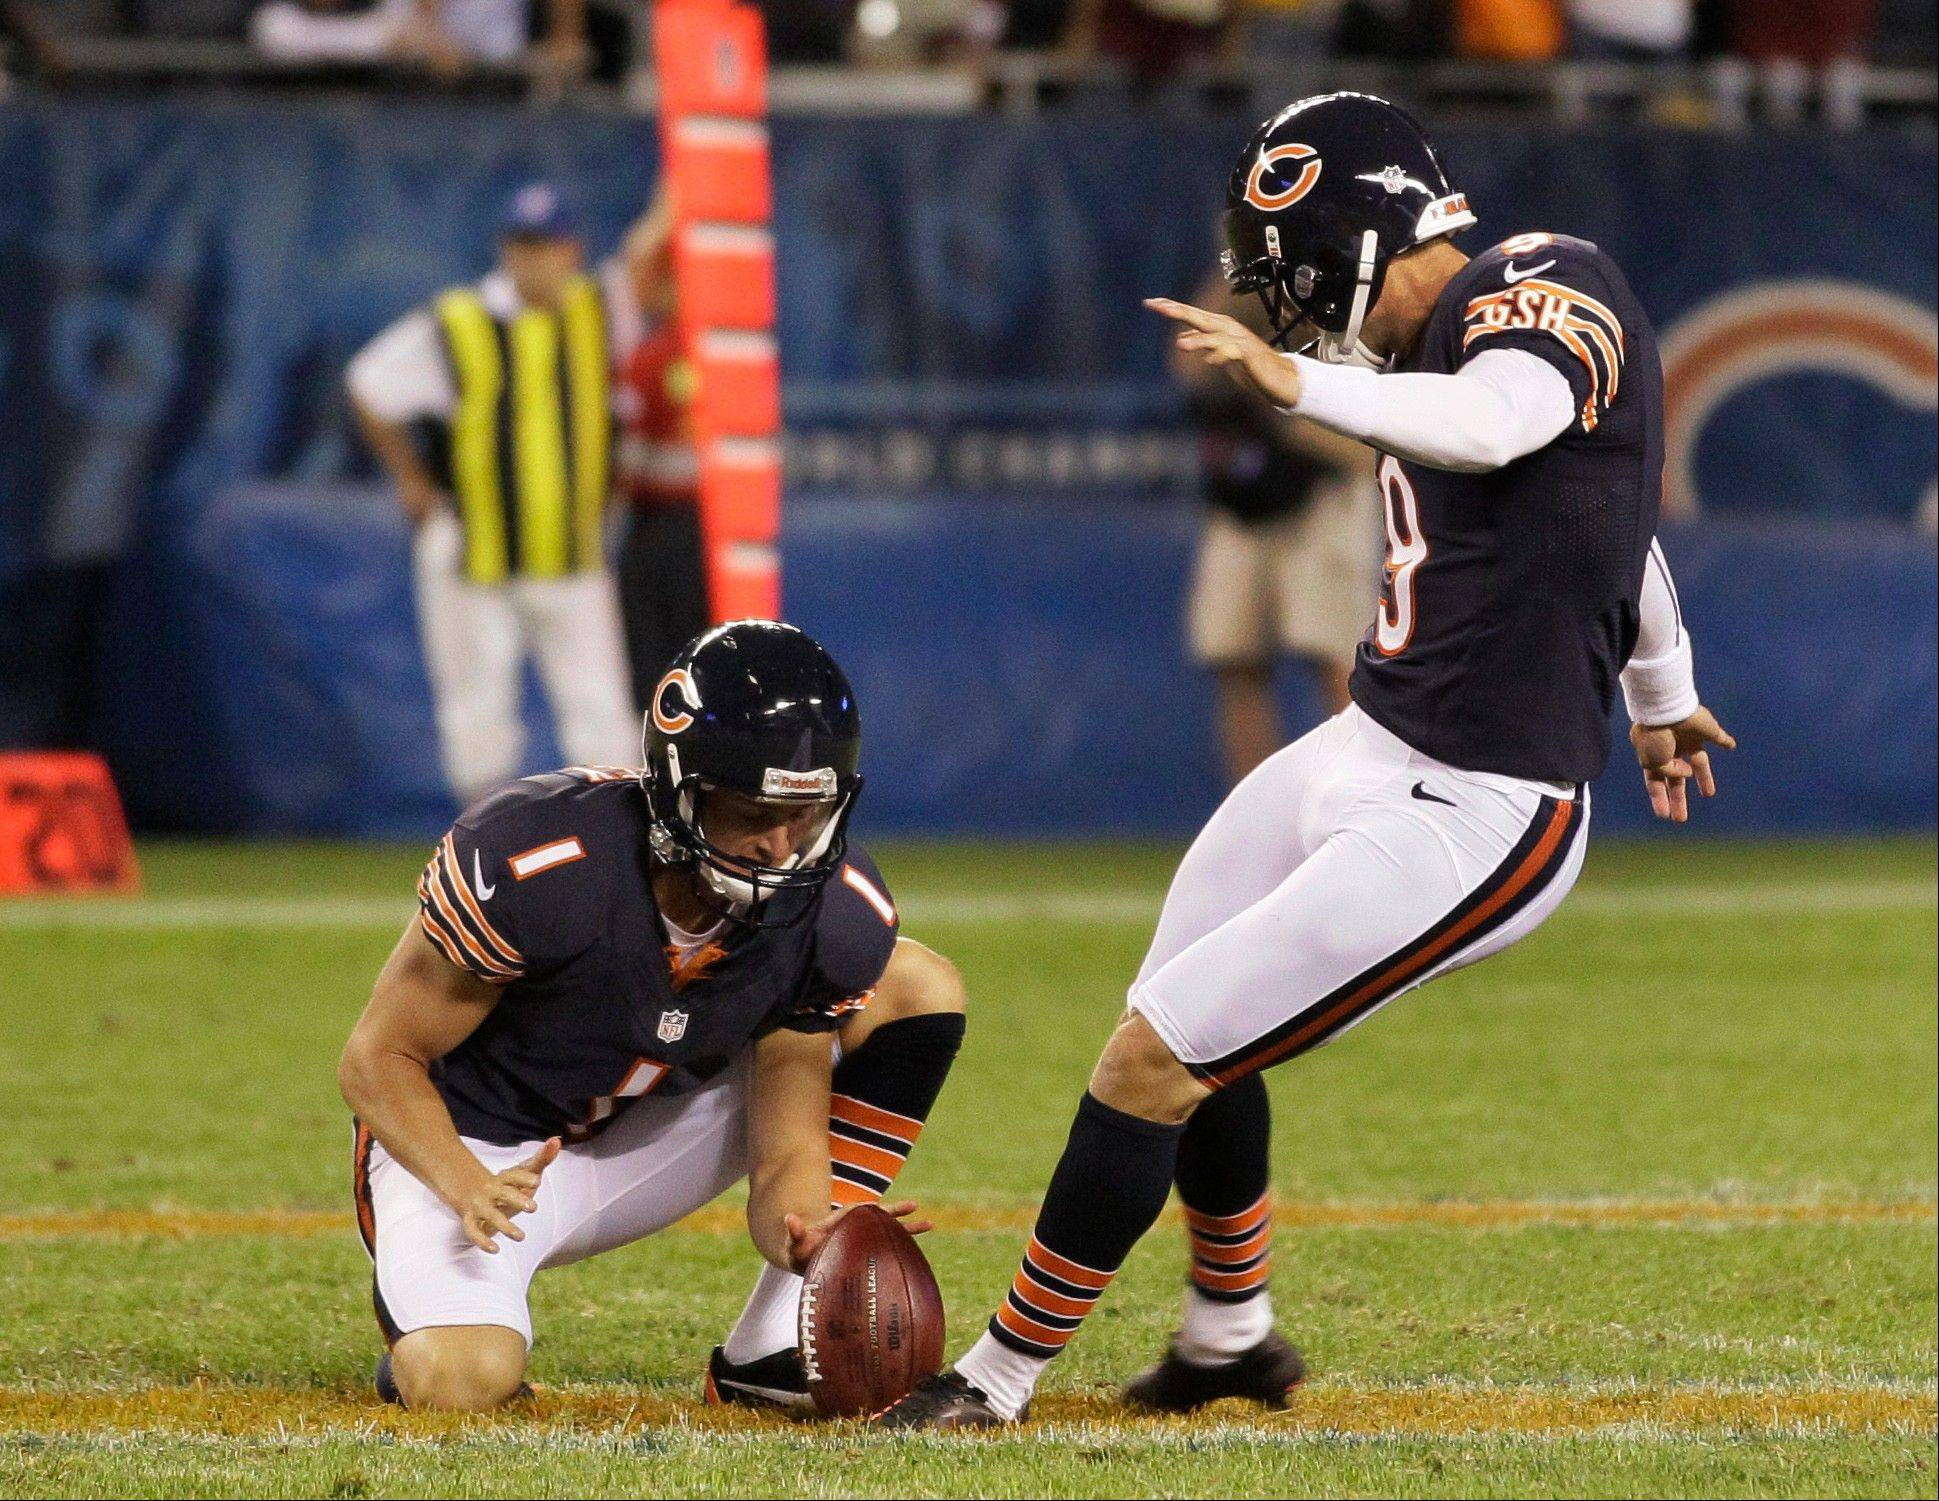 Chicago Bears' Robbie Gould (9) kicks a field goal to give the Bears a 33-31 win over the Washington Redskins in an NFL preseason football game in Chicago, Saturday, Aug. 18, 2012. Holding is Ryan Quigley.